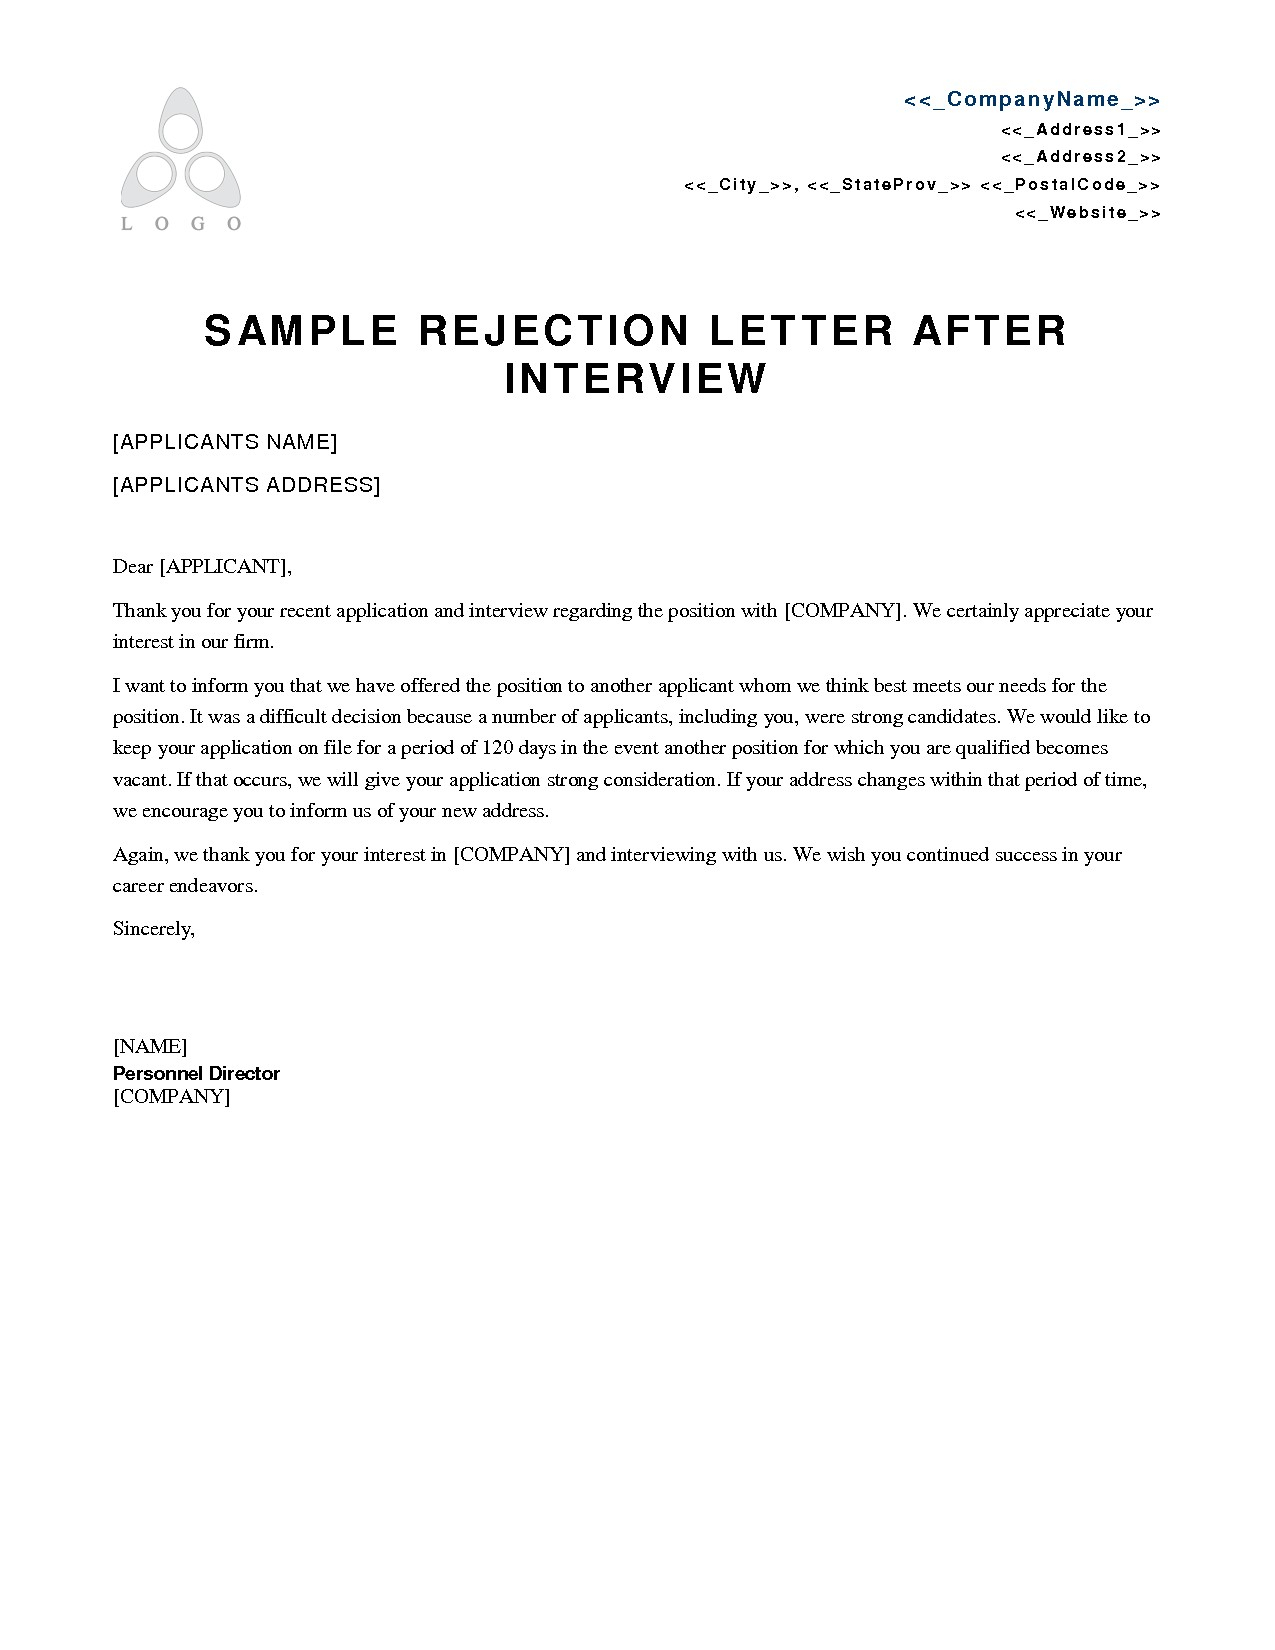 Rejection Letter Template after Interview - Interview Questions Sample Interview Rejection Letter Travelturkey